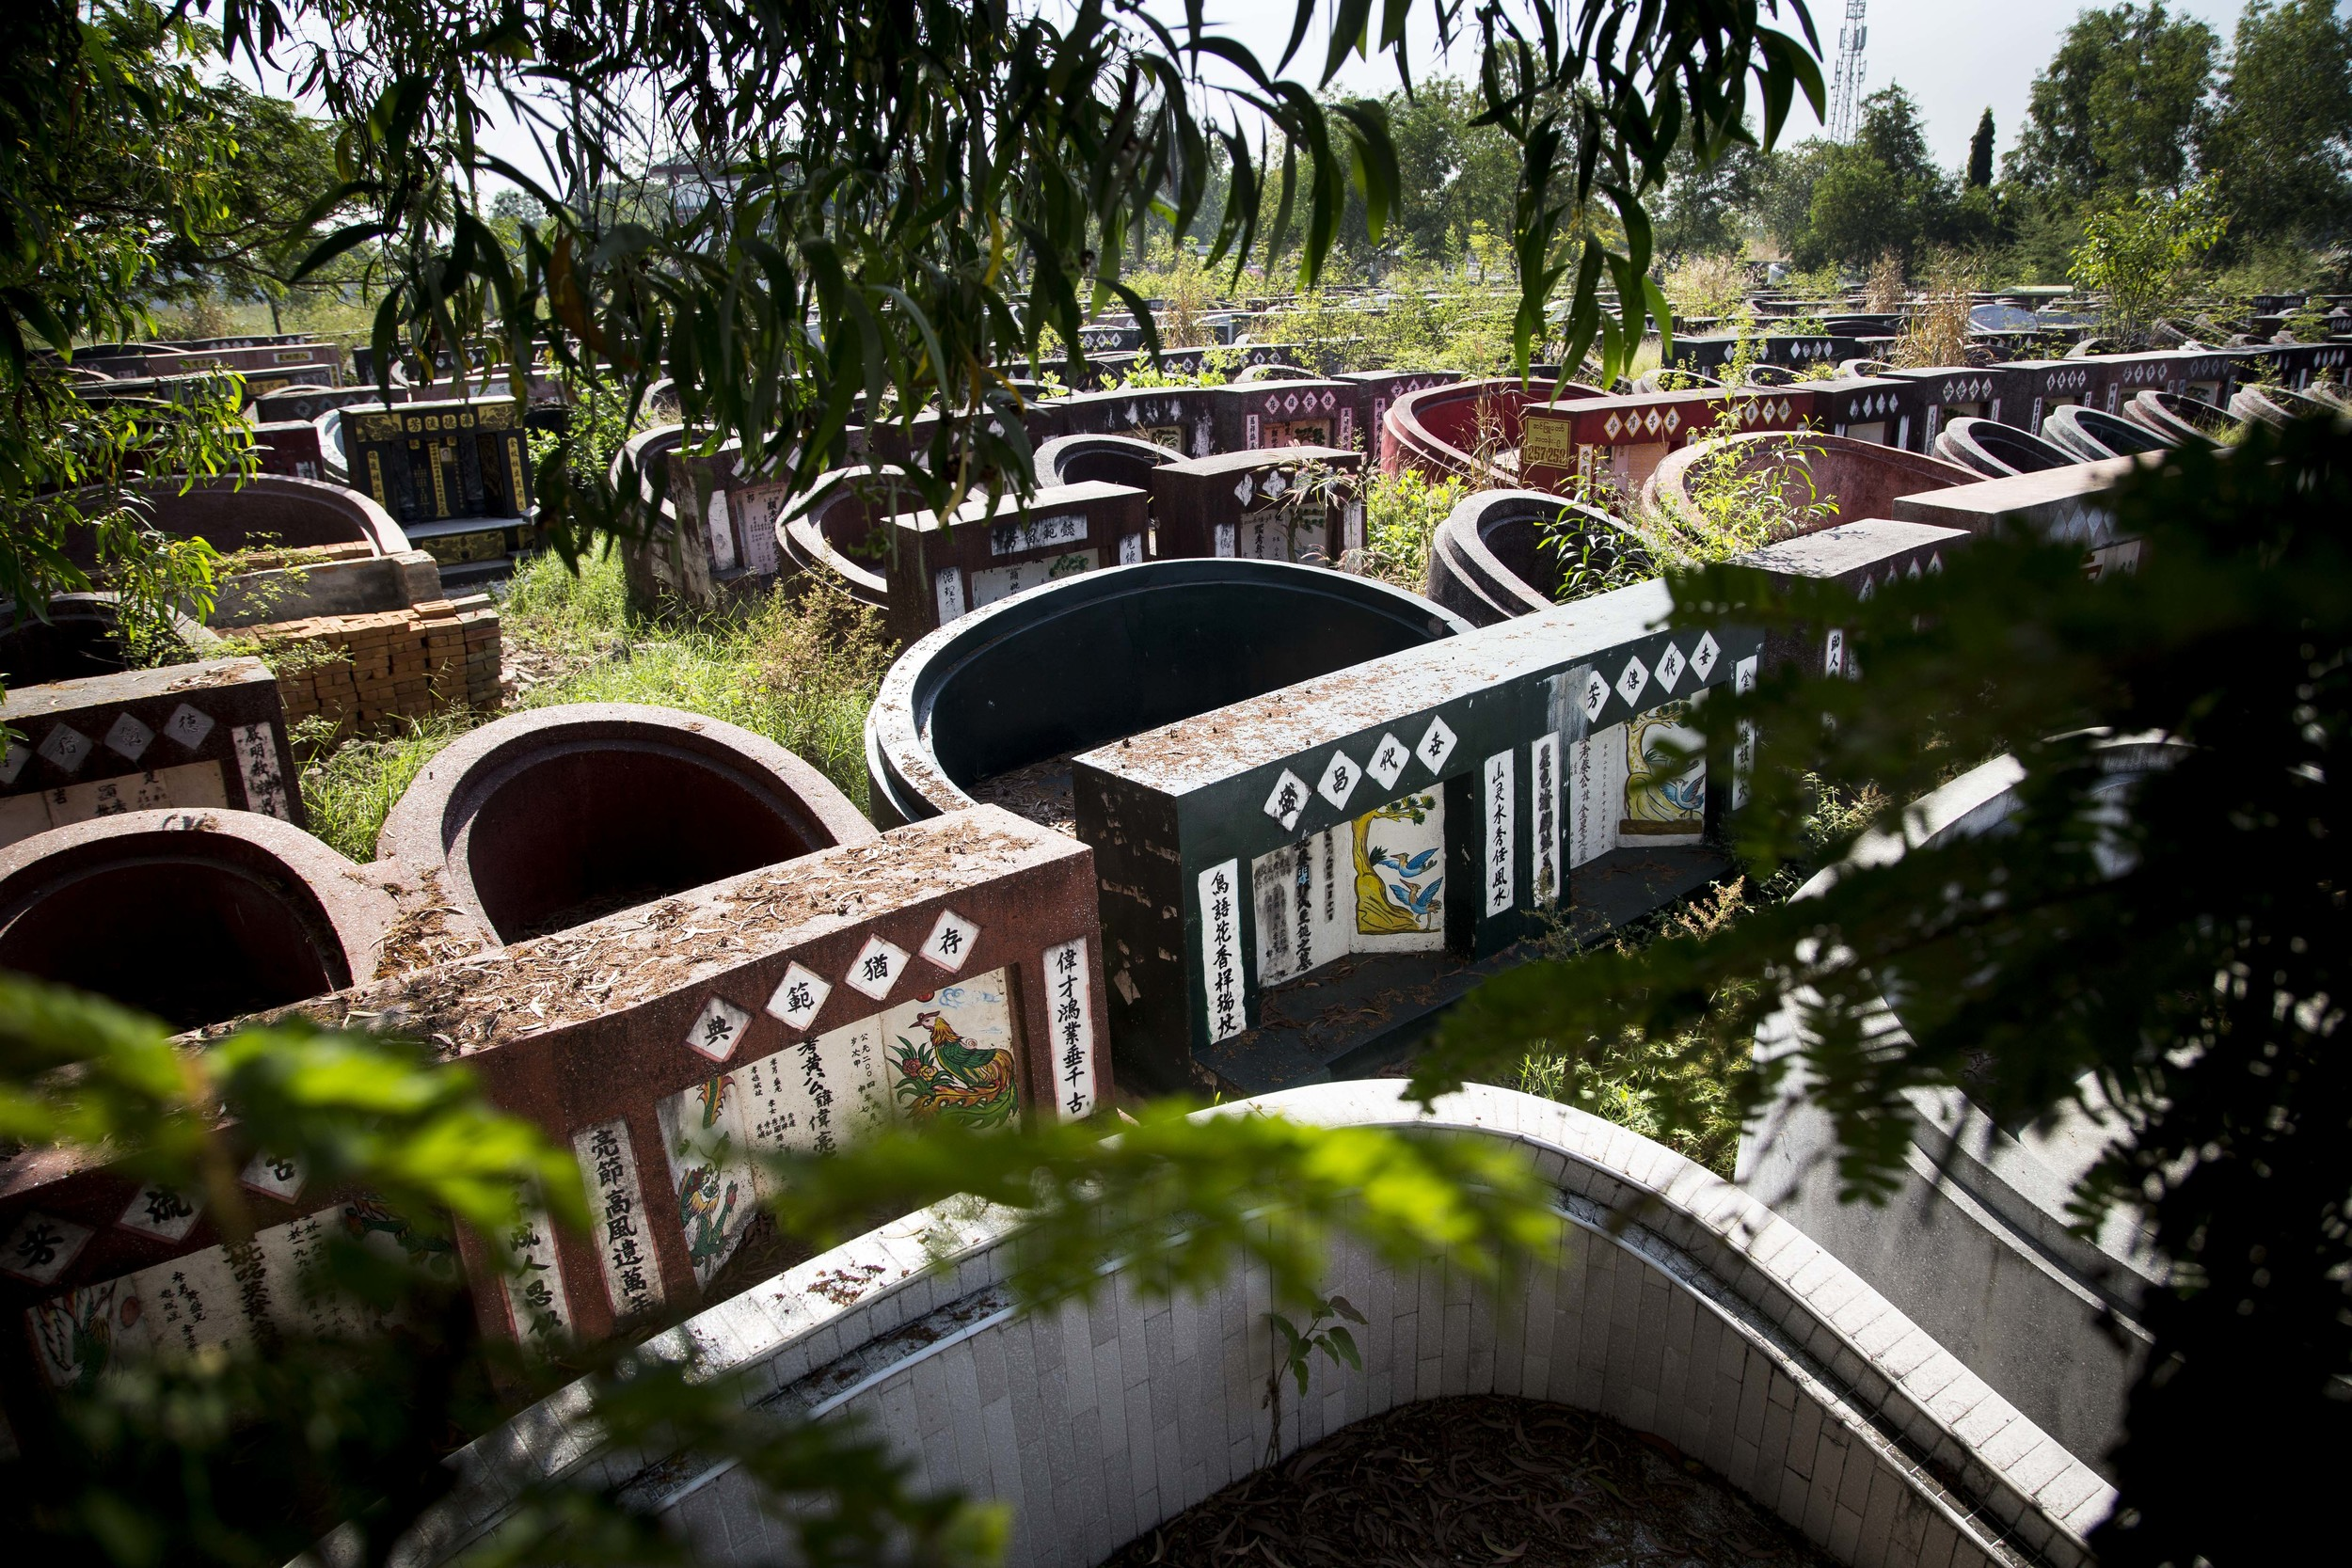 A chinese cemetery at Yayway cemetery in the outskirct of Yangon, Myanmar. Photo by Ann Wang